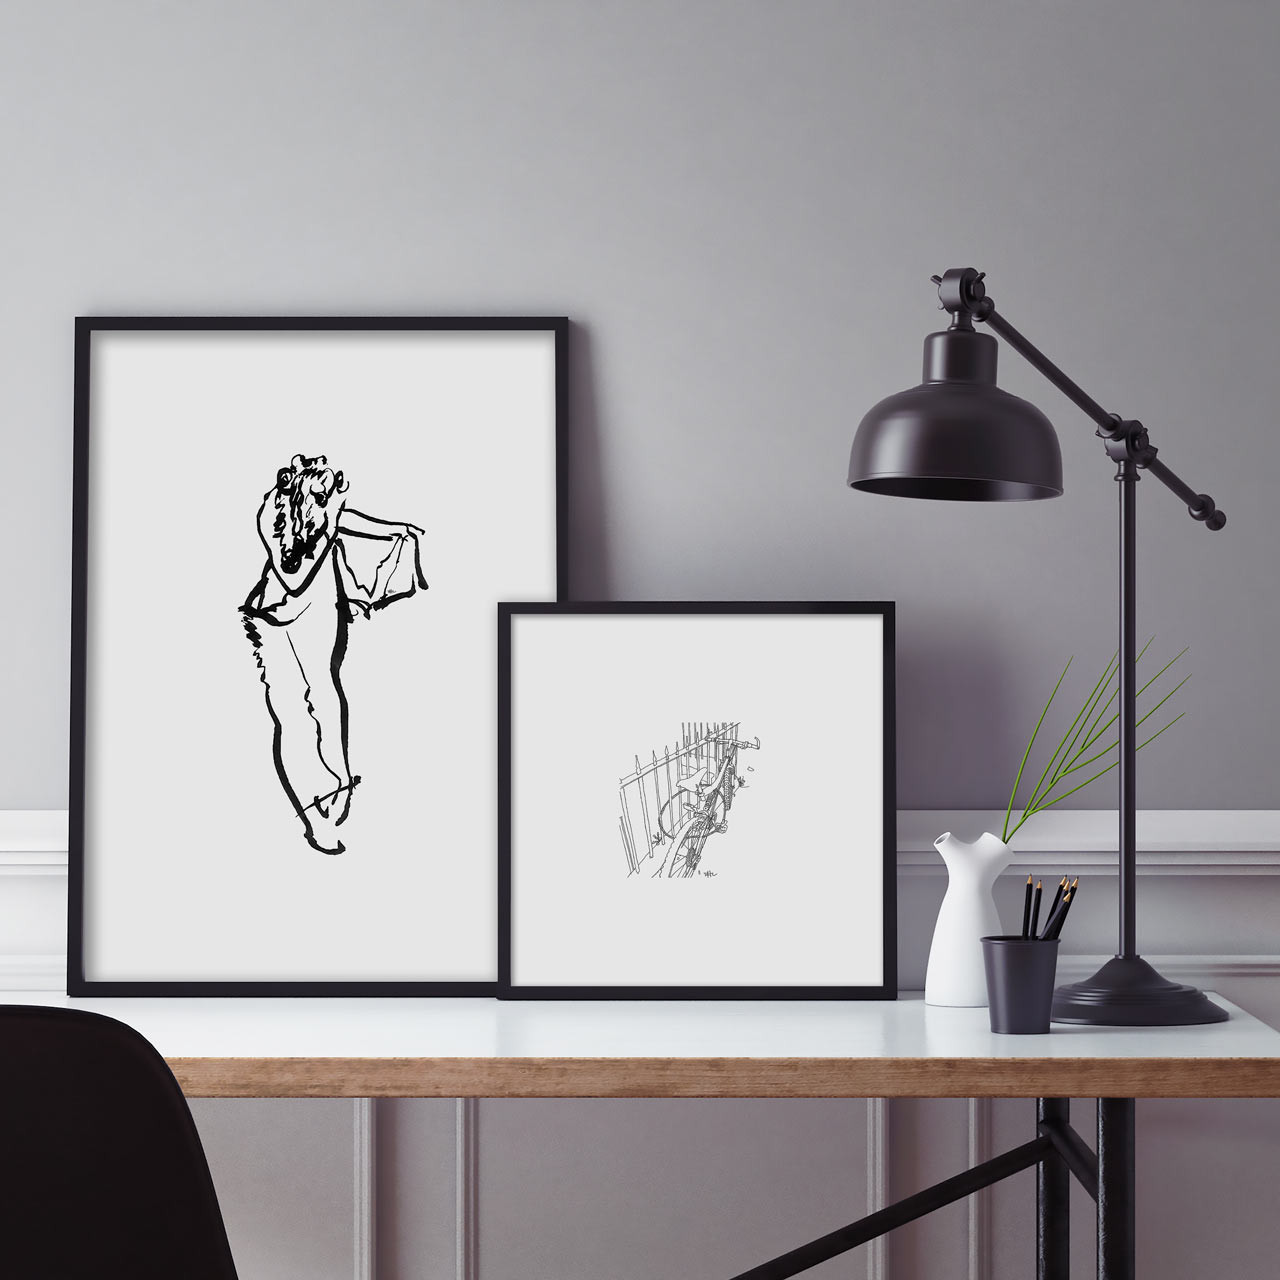 'Trousers' and 'By the Railings' Art Prints (ink drawings by David Cobley) from The Printed Home